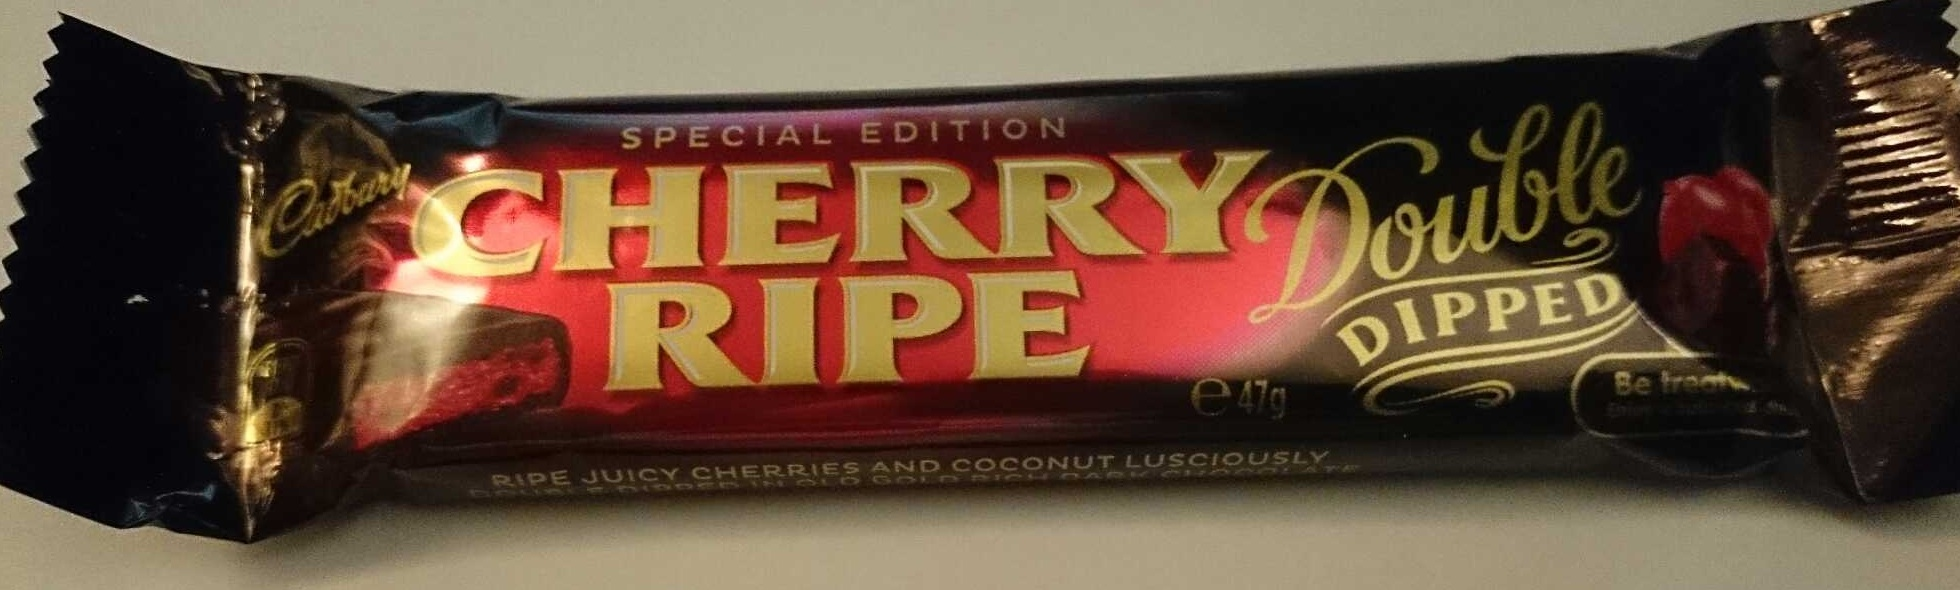 Cherry Ripe Special Edition Double Dipped - Product - en